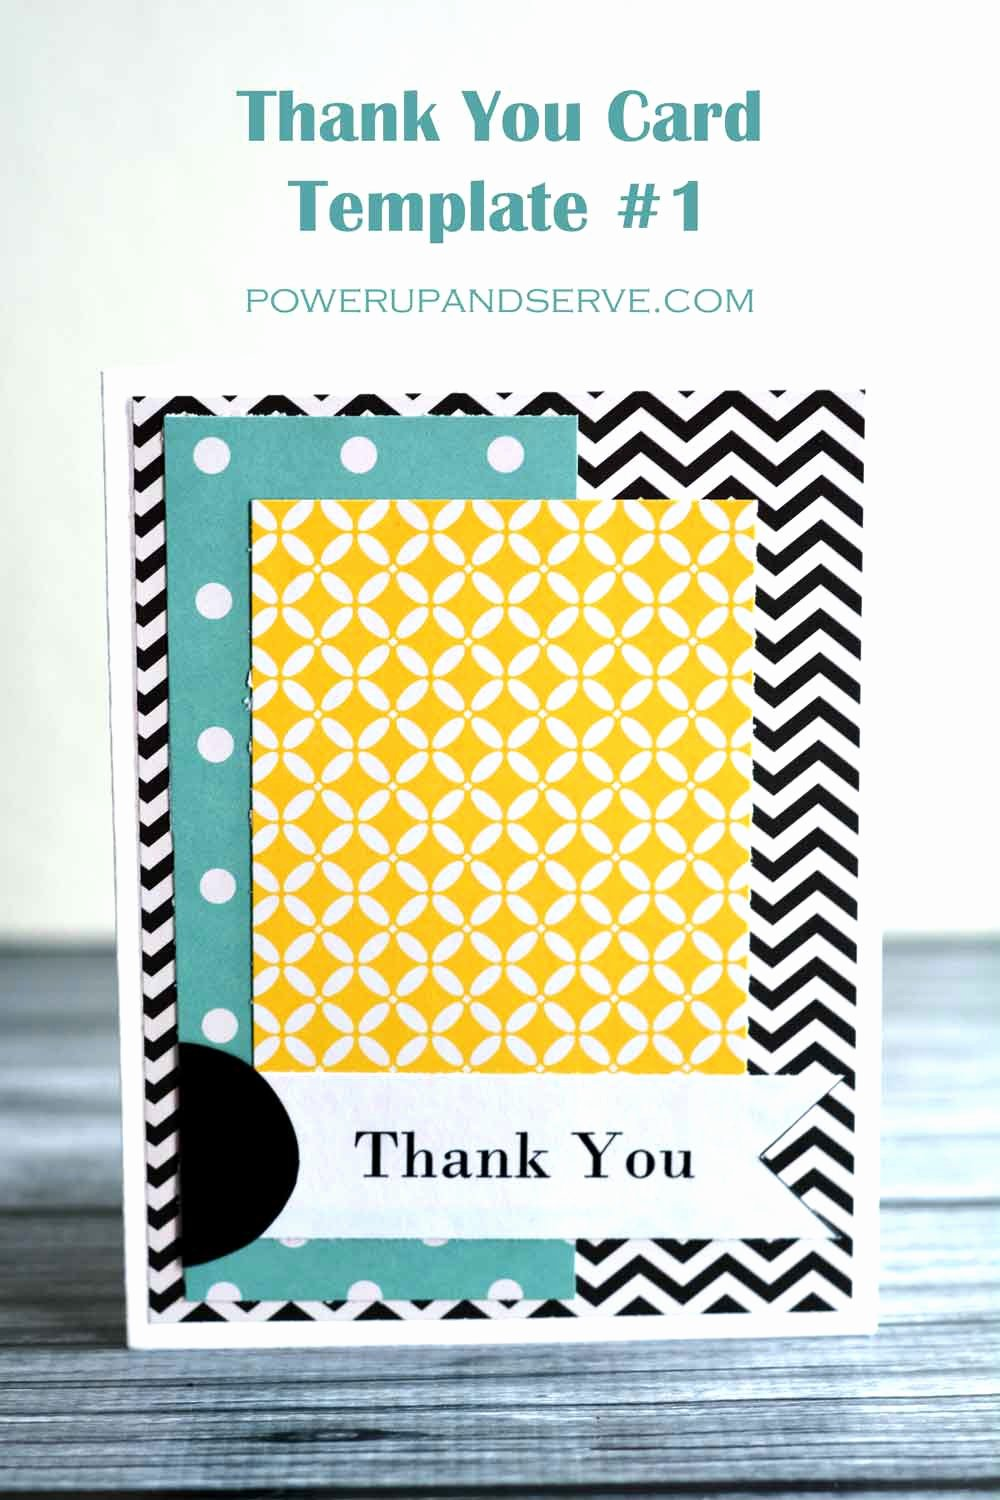 Thank You Postcard Template Lovely Thank You Card Template 1 Power Up and Serve